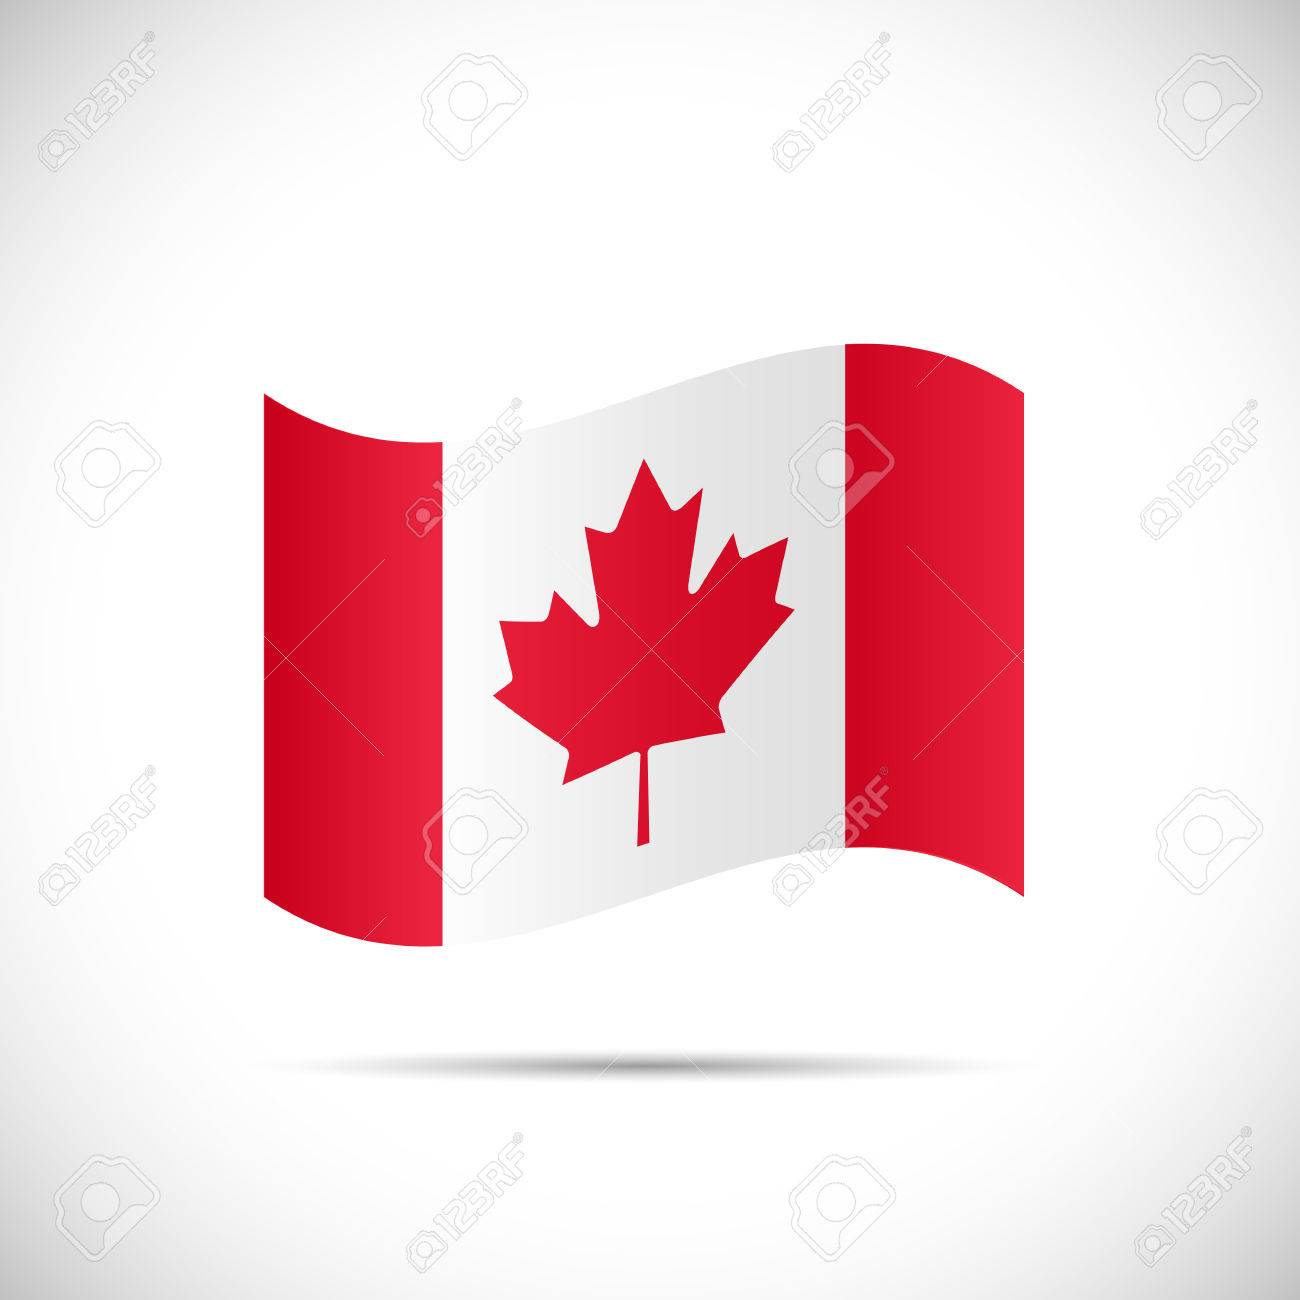 Illustration of the flag of Canada isolated on a white background. - 34766495